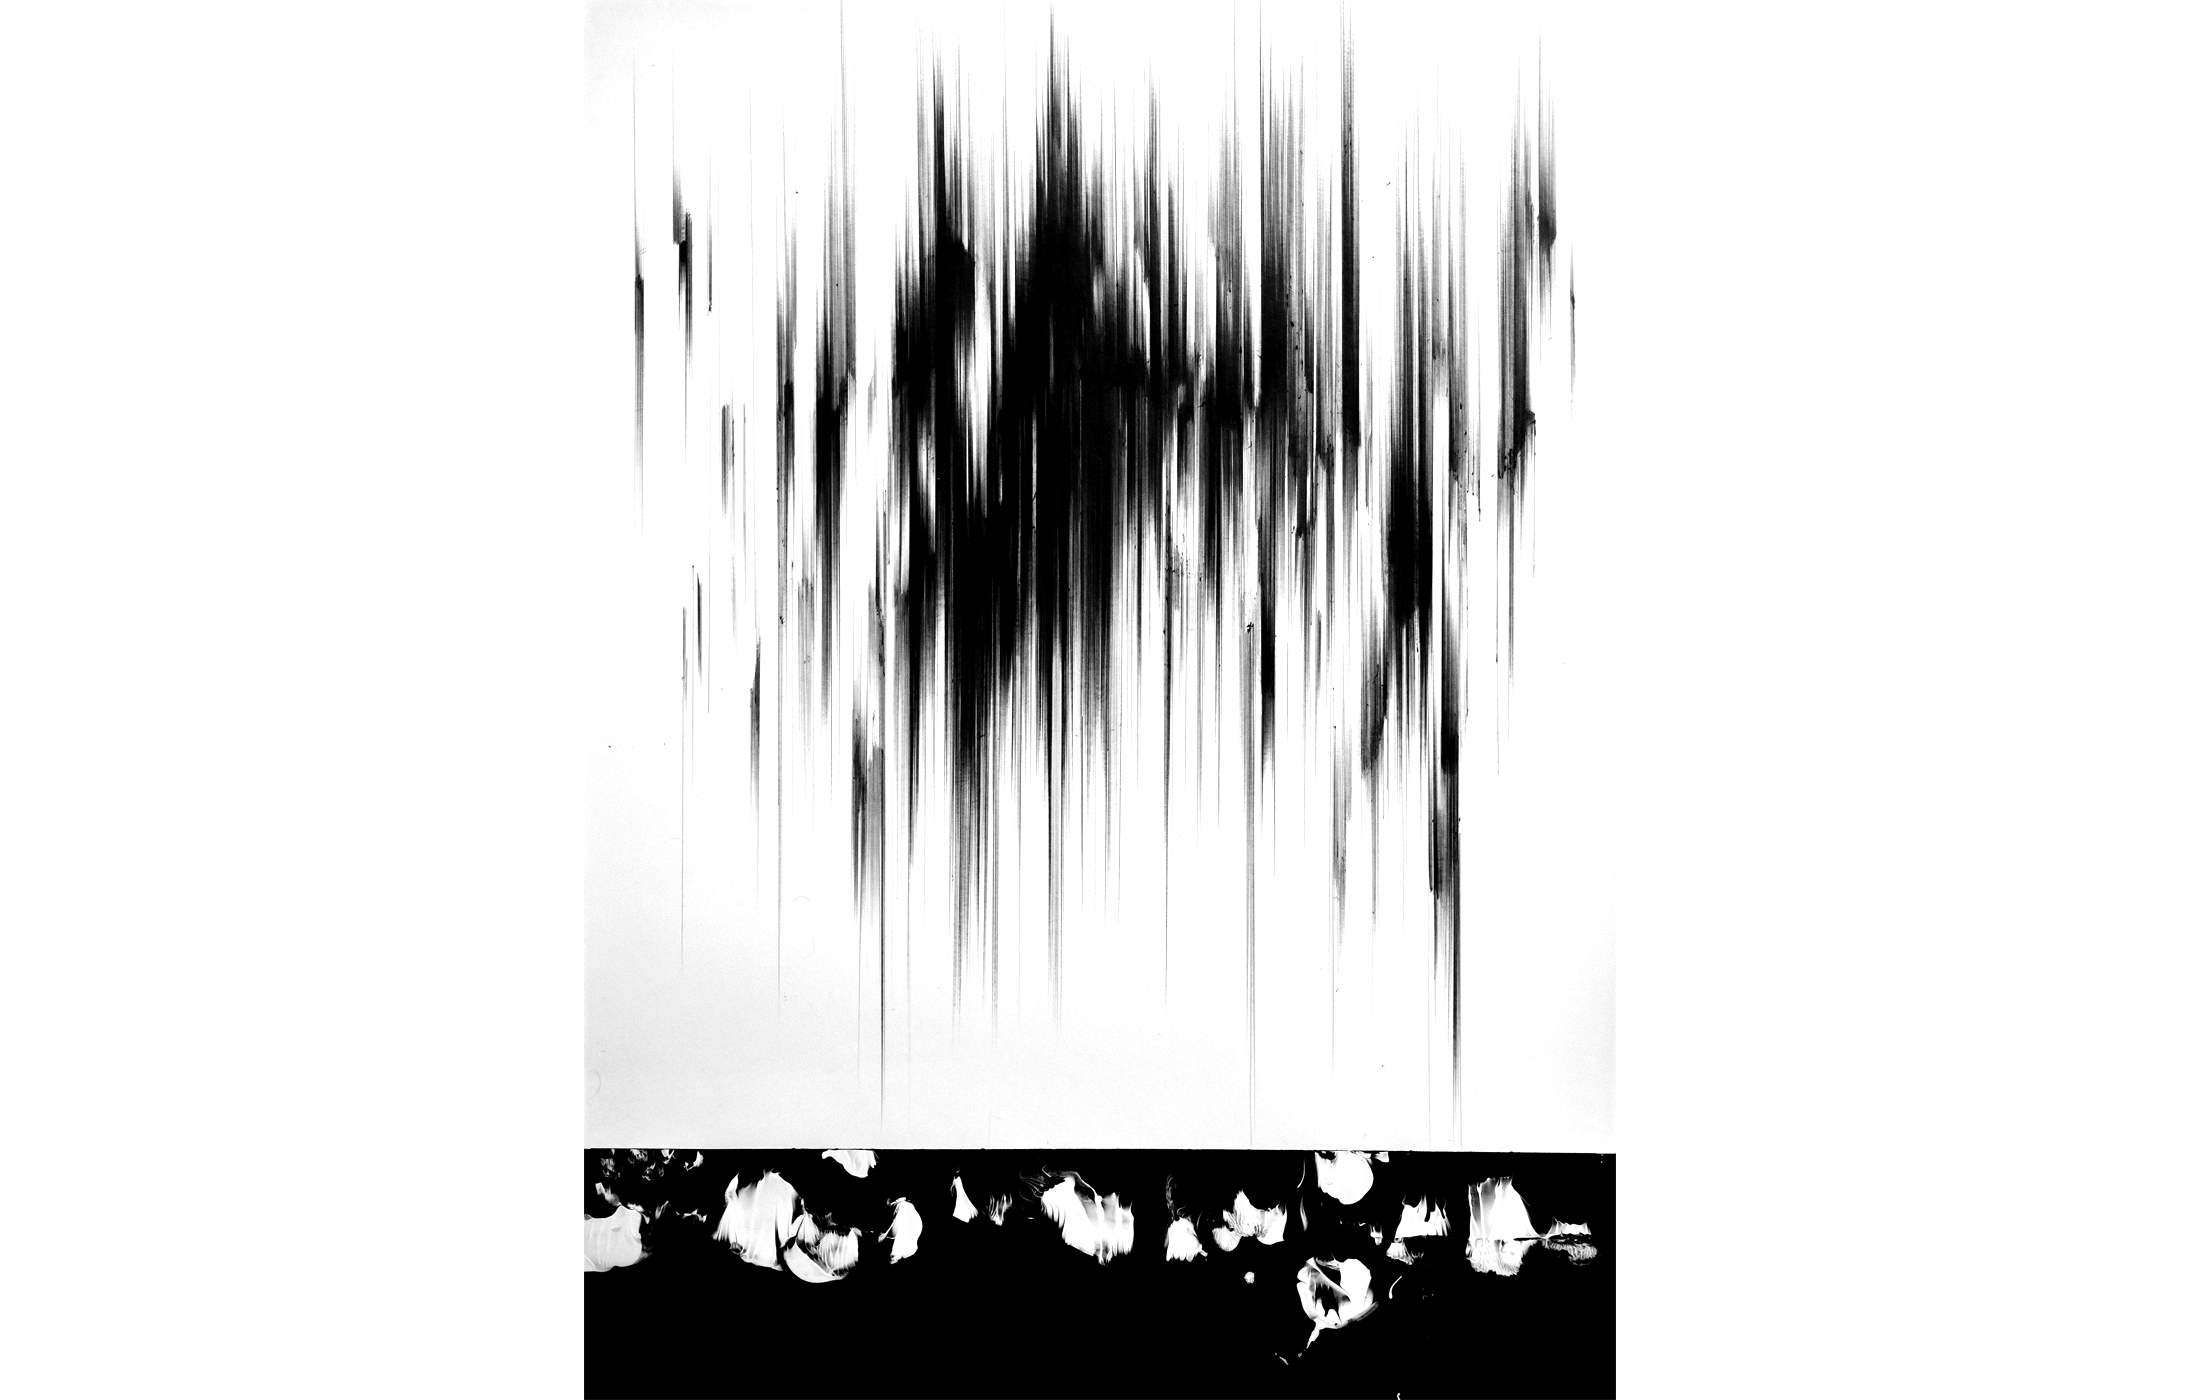 Agathe Toman It Echoes The Invisibles One Sacred Painting Contemporary Drawing Painting Black White Abstract Art Artist Paris DDessin Art Fair